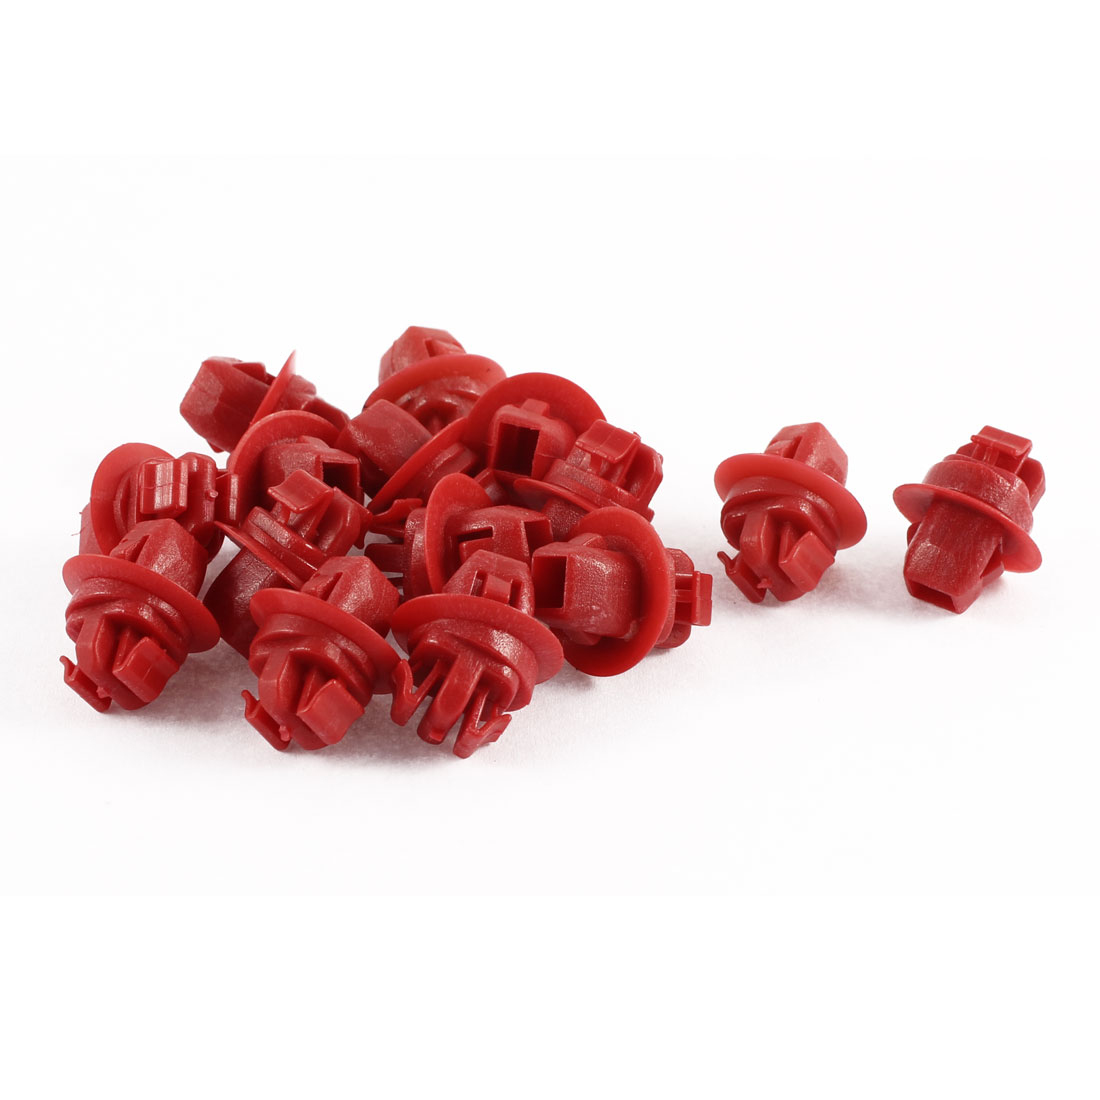 15 Pcs Red Plastic 10mm Dia Hole Fastener Door Lock Rod End Clamps for Toyota